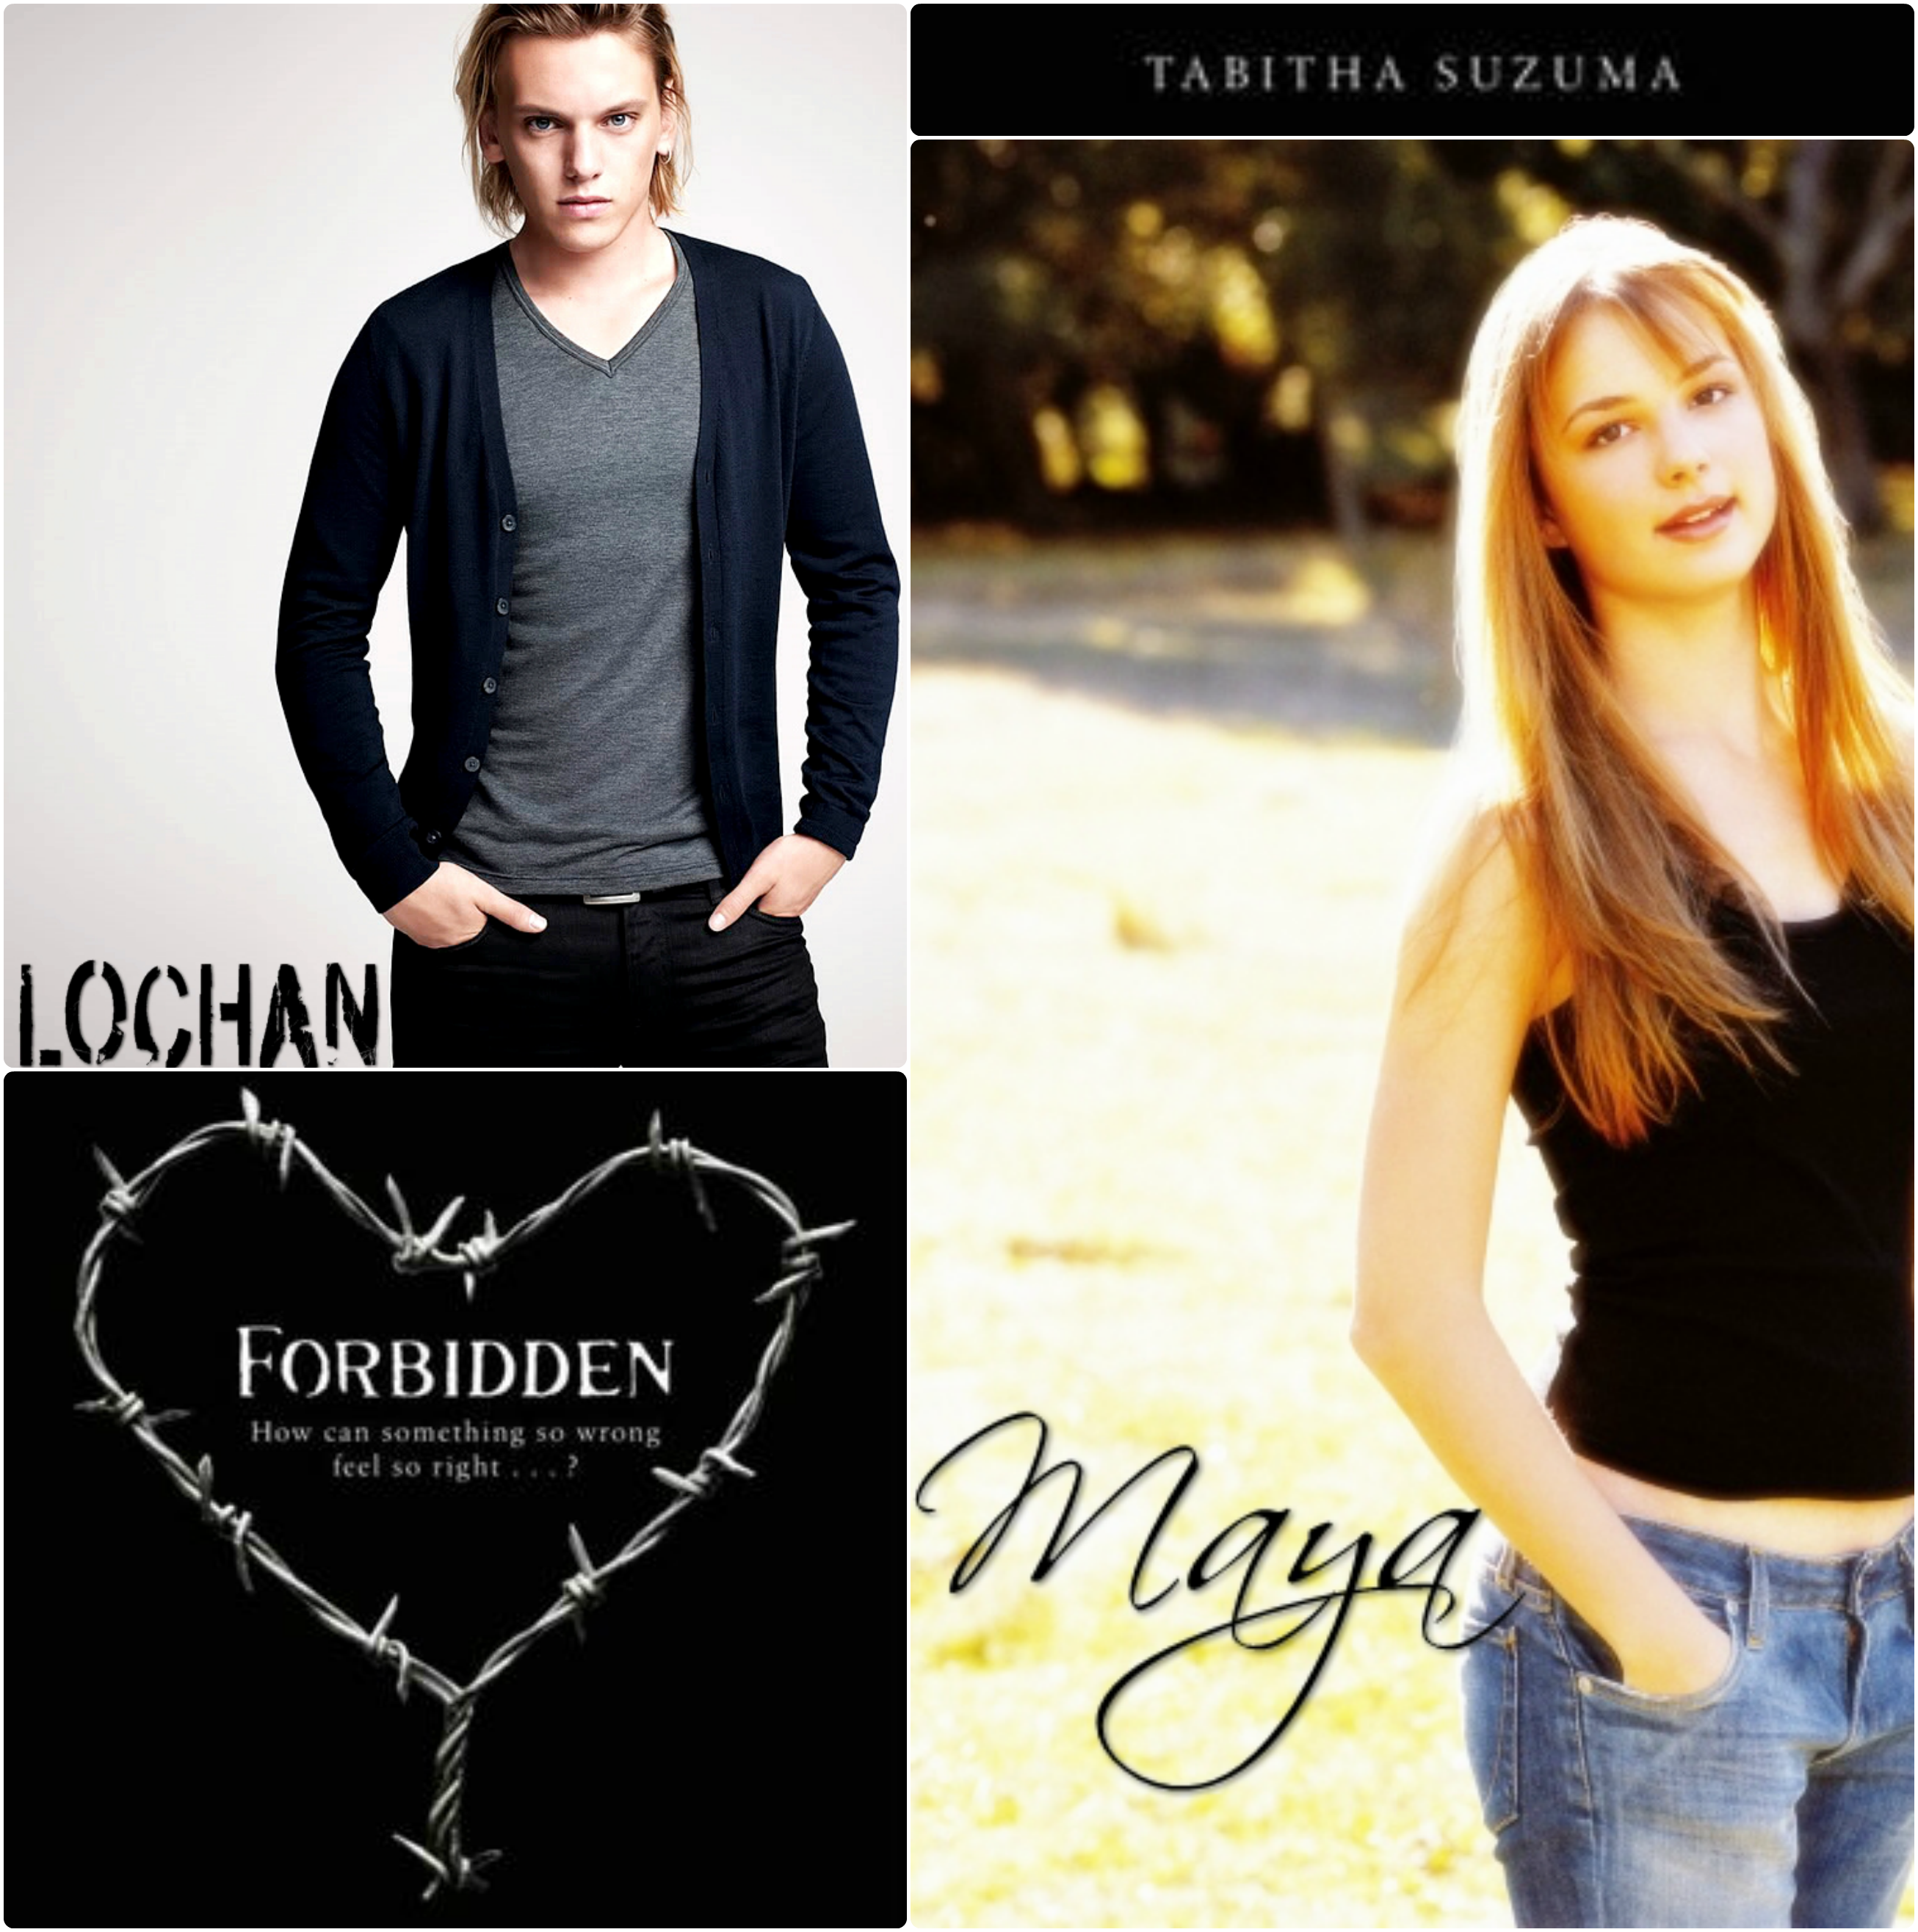 Forbidden by Tabitha Suzuma   Book Edits   Pinterest   Books Maya and Lochan  Forbidden  Tabitha Suzuma